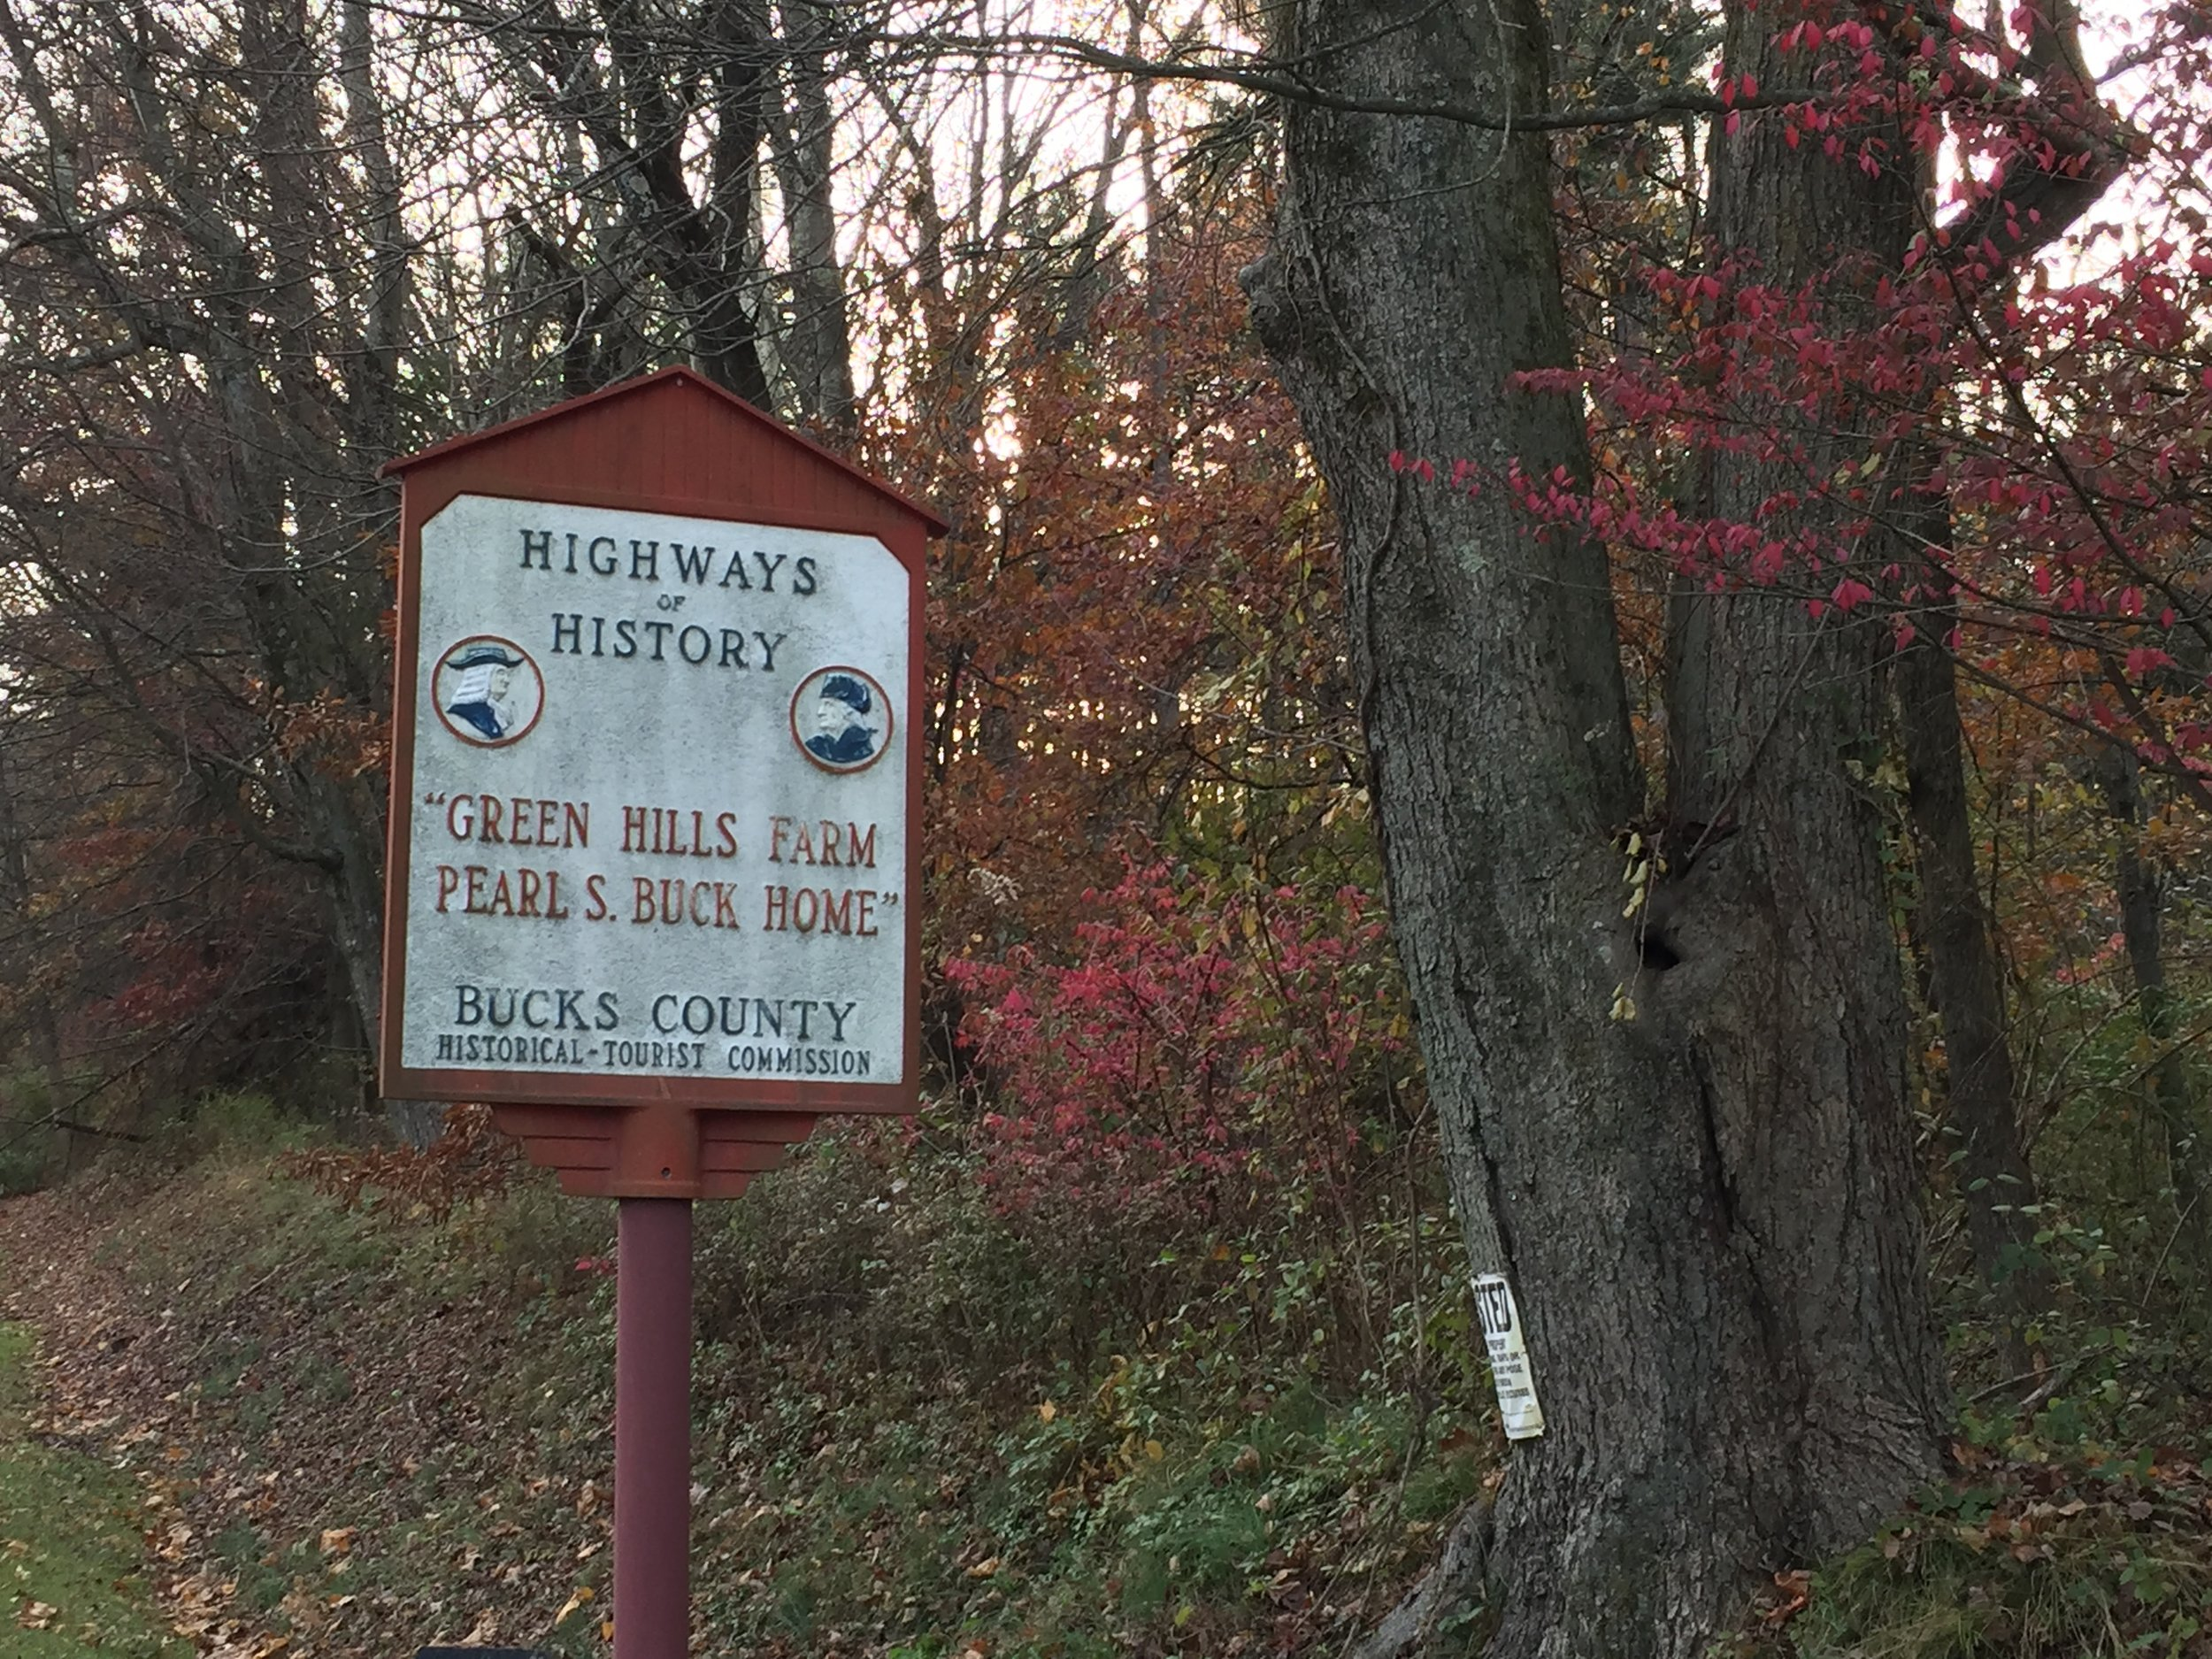 Looking southeastward, one could glimpse at the Highways of History sign denoting Green Hills Farm Pearl S. Buck Home.